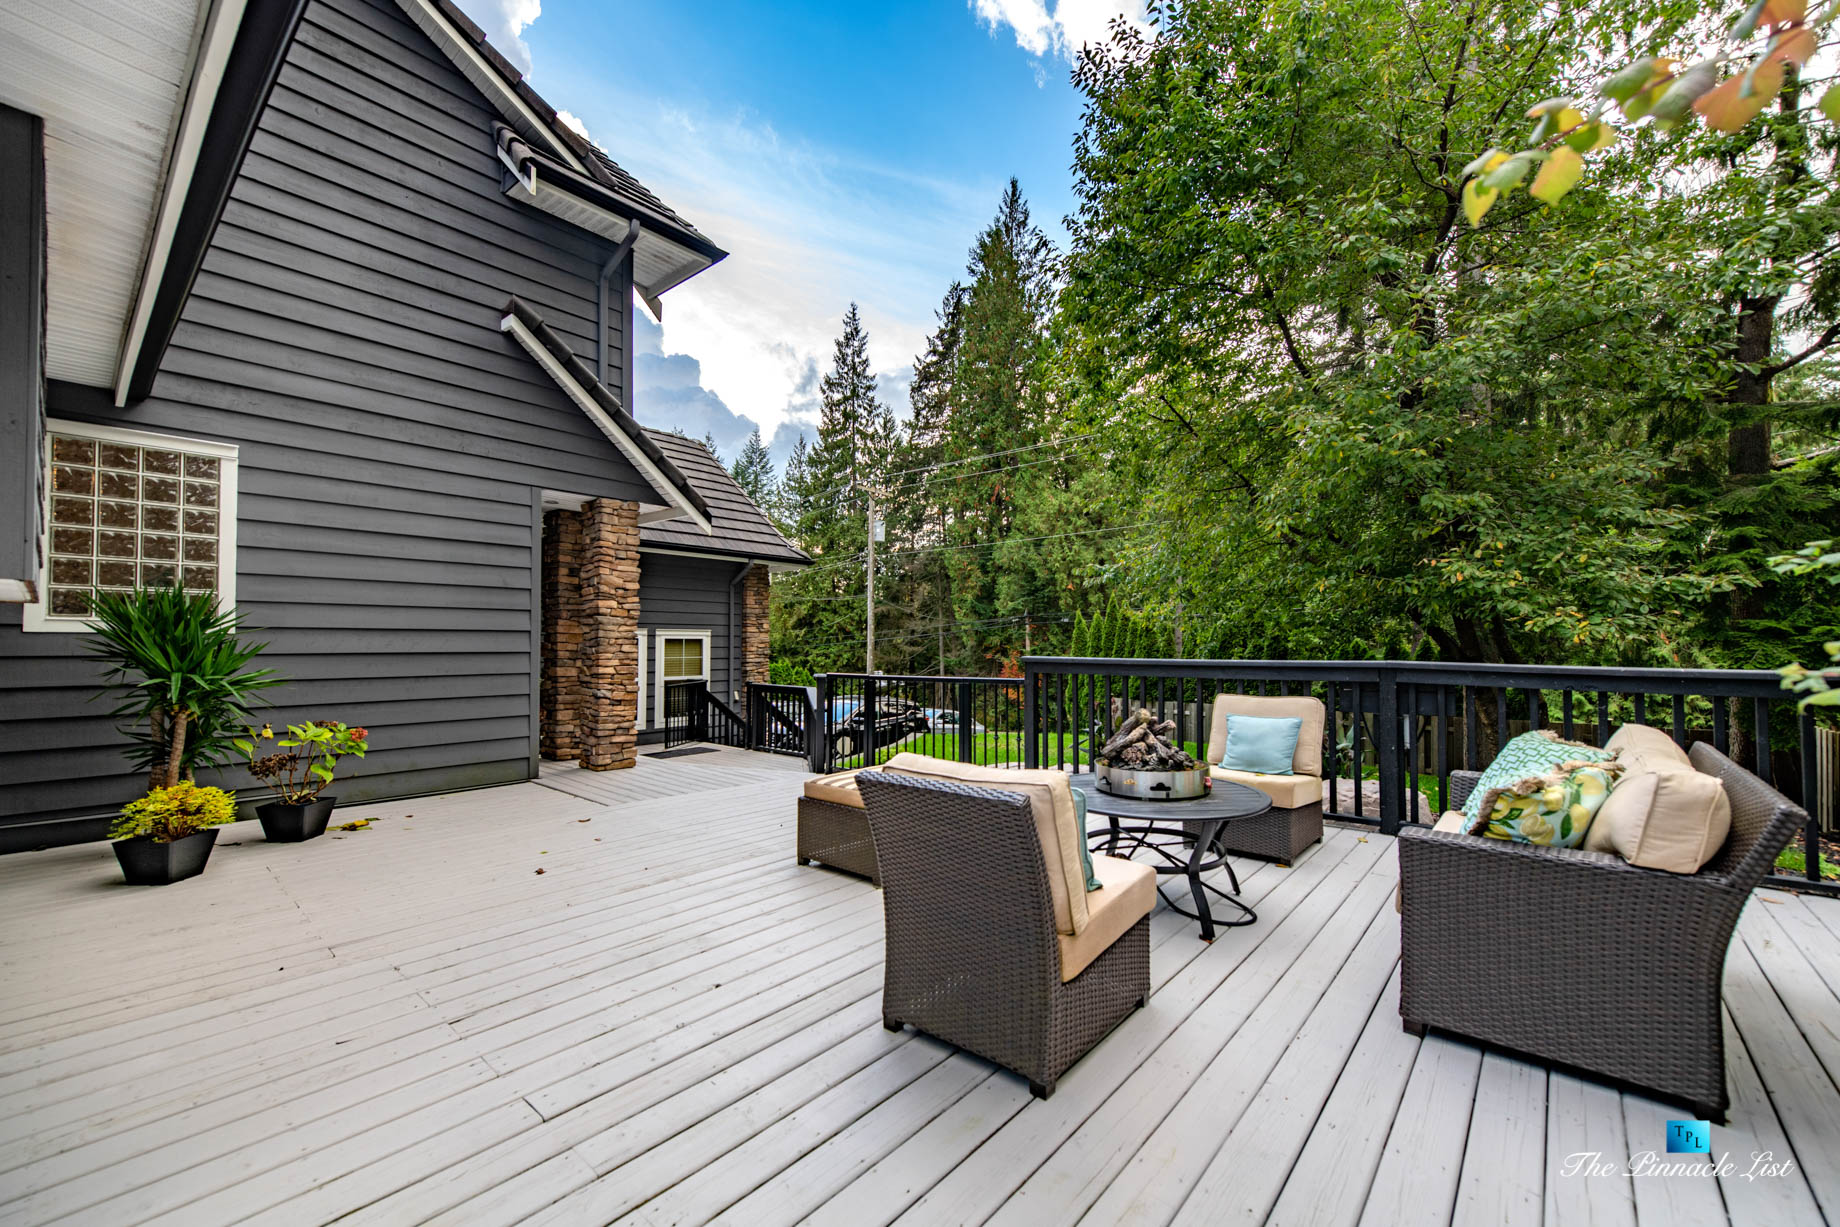 2366 Sunnyside Rd, Anmore, BC, Canada – Exterior Front Deck Lounge